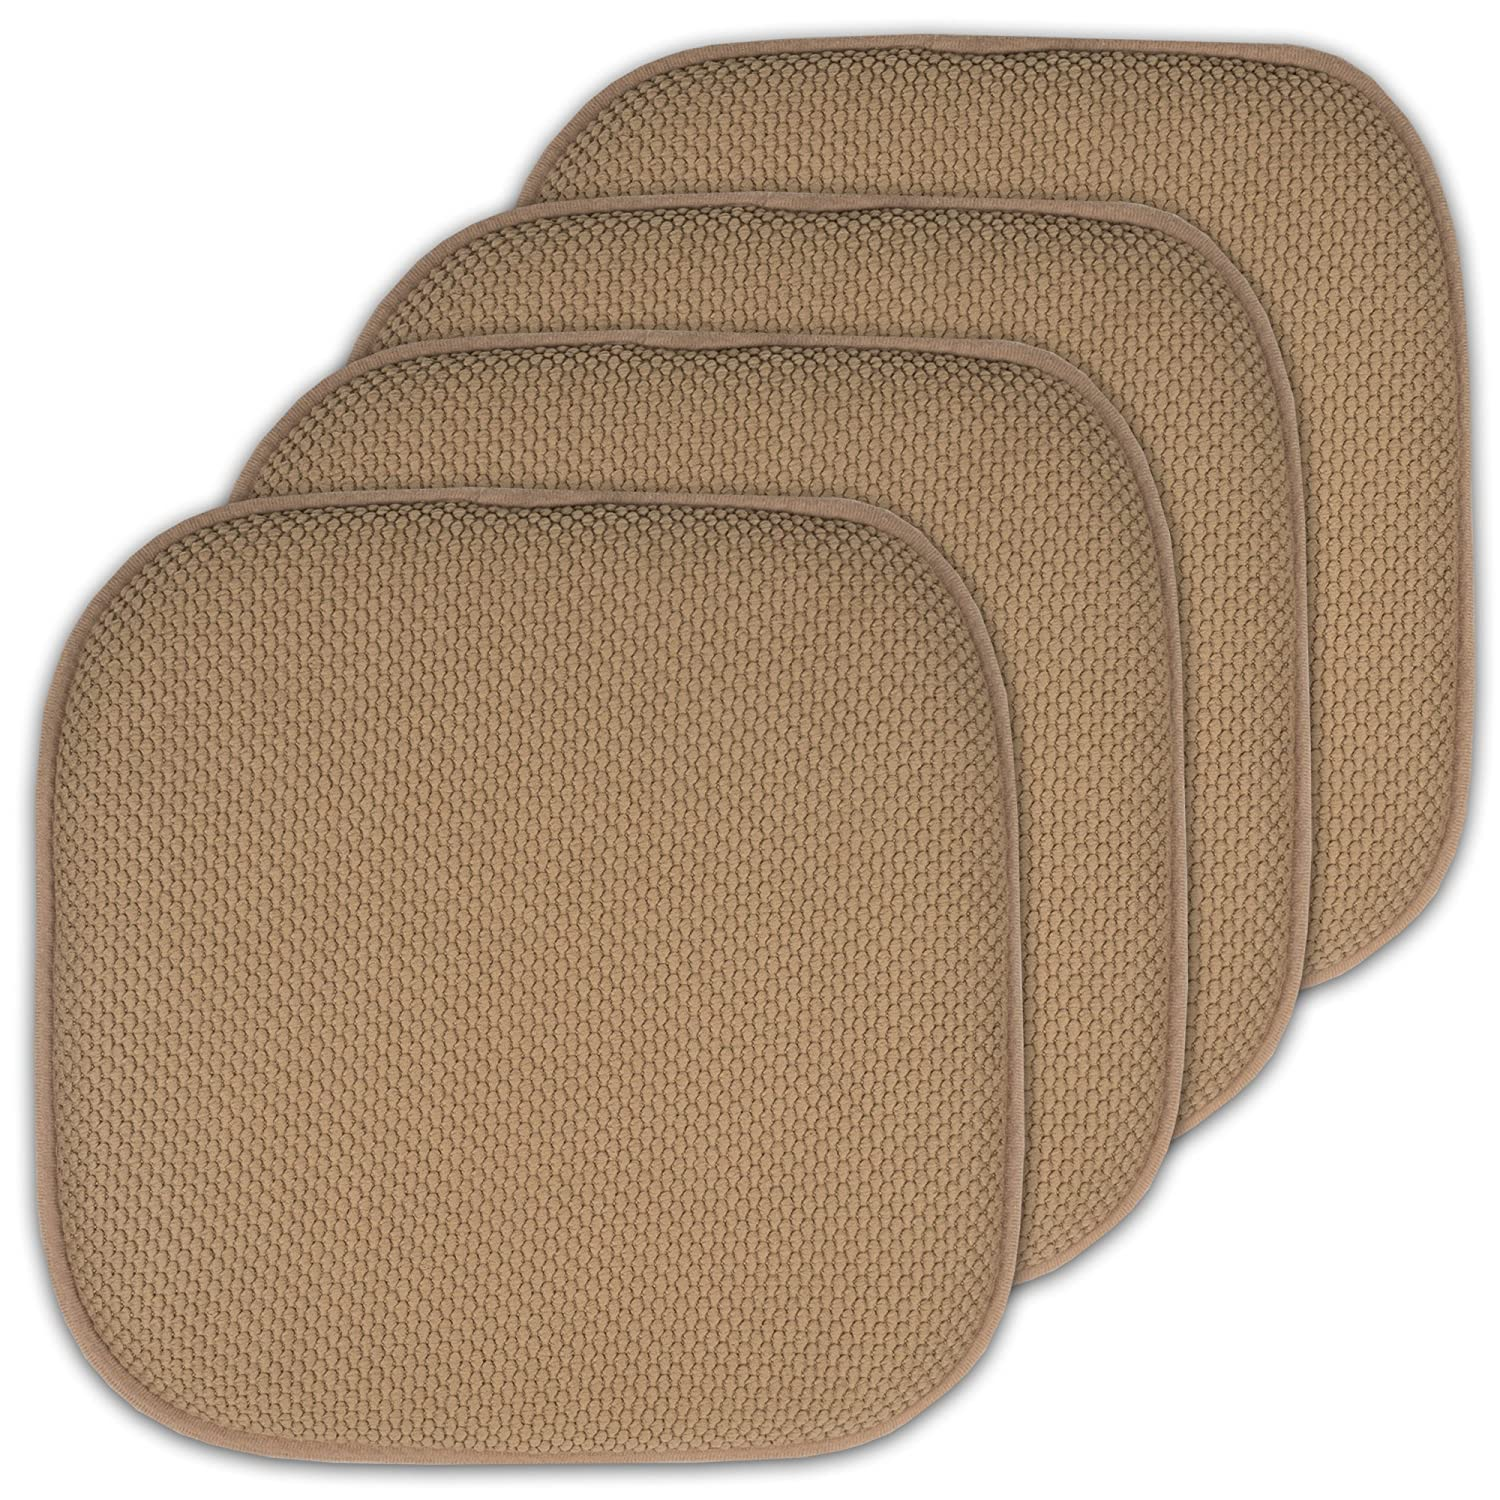 "Sweet Home Collection 4 Pack Memory Foam Honeycomb Nonslip Back 16"" x16"" Chair/Seat Cushion Pad - CPMF-4PK-TAUPE"